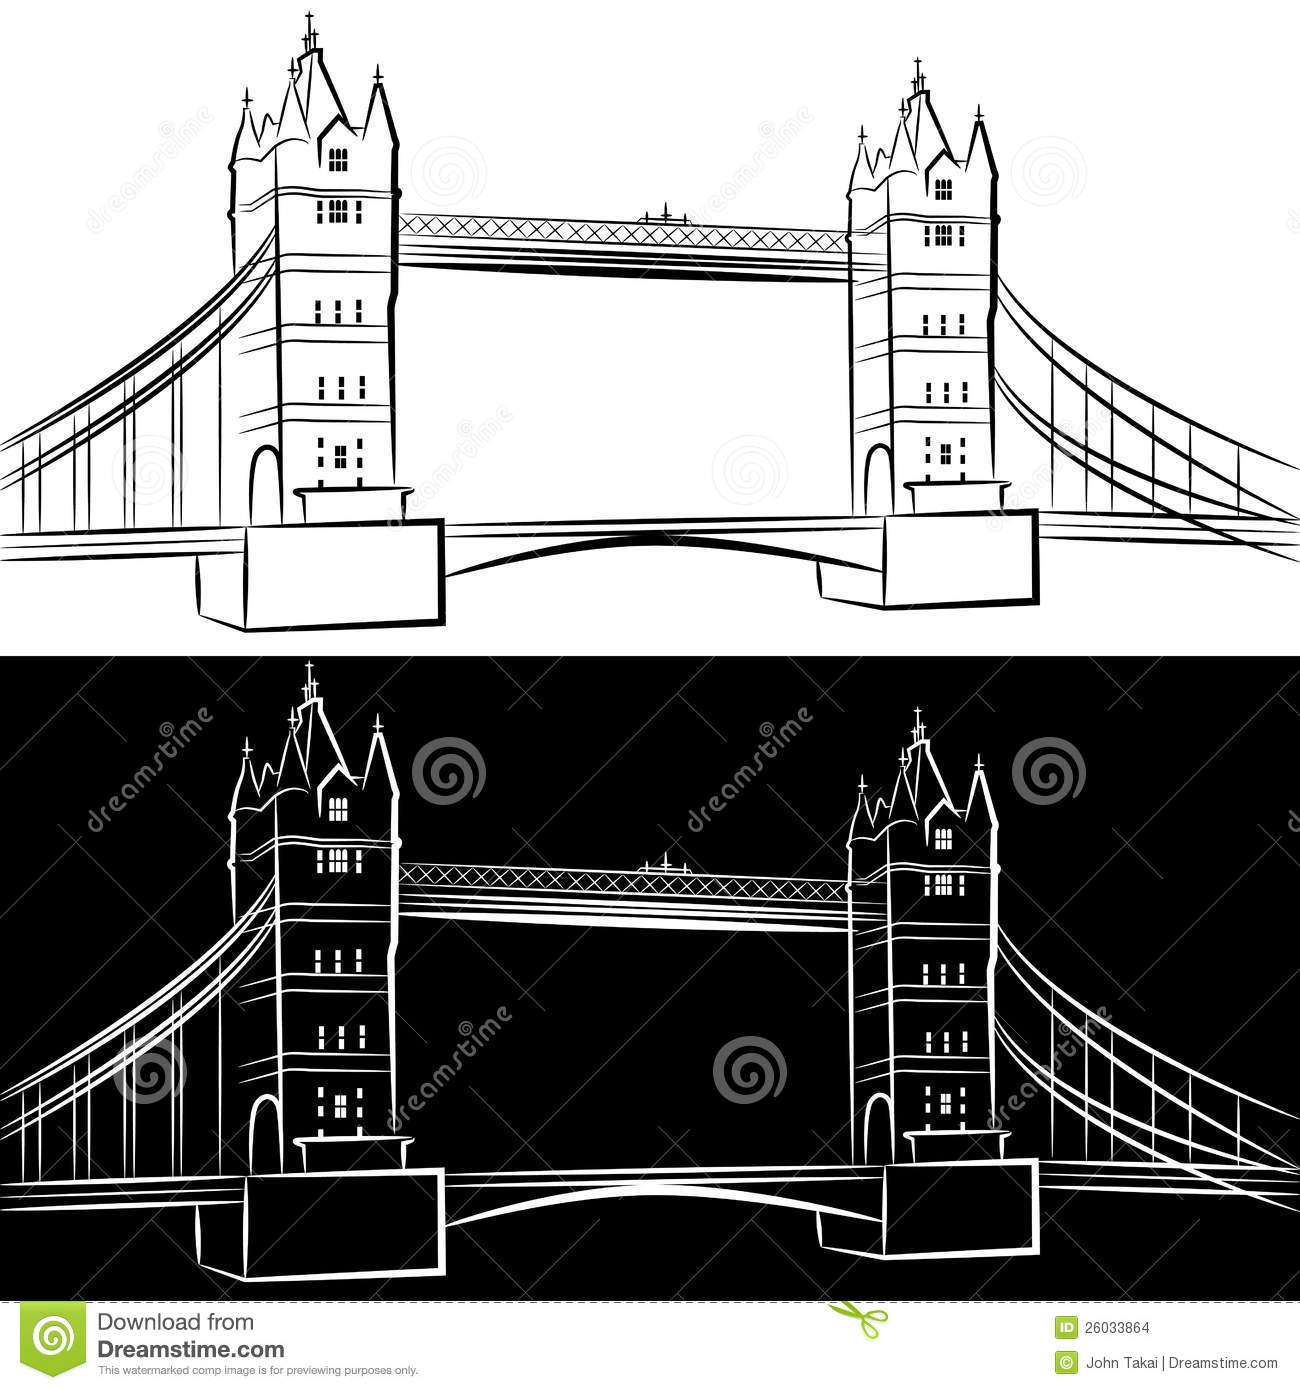 London Bridge Drawing Stock Images - Image: 26033864 Bridge Drawing For Kids